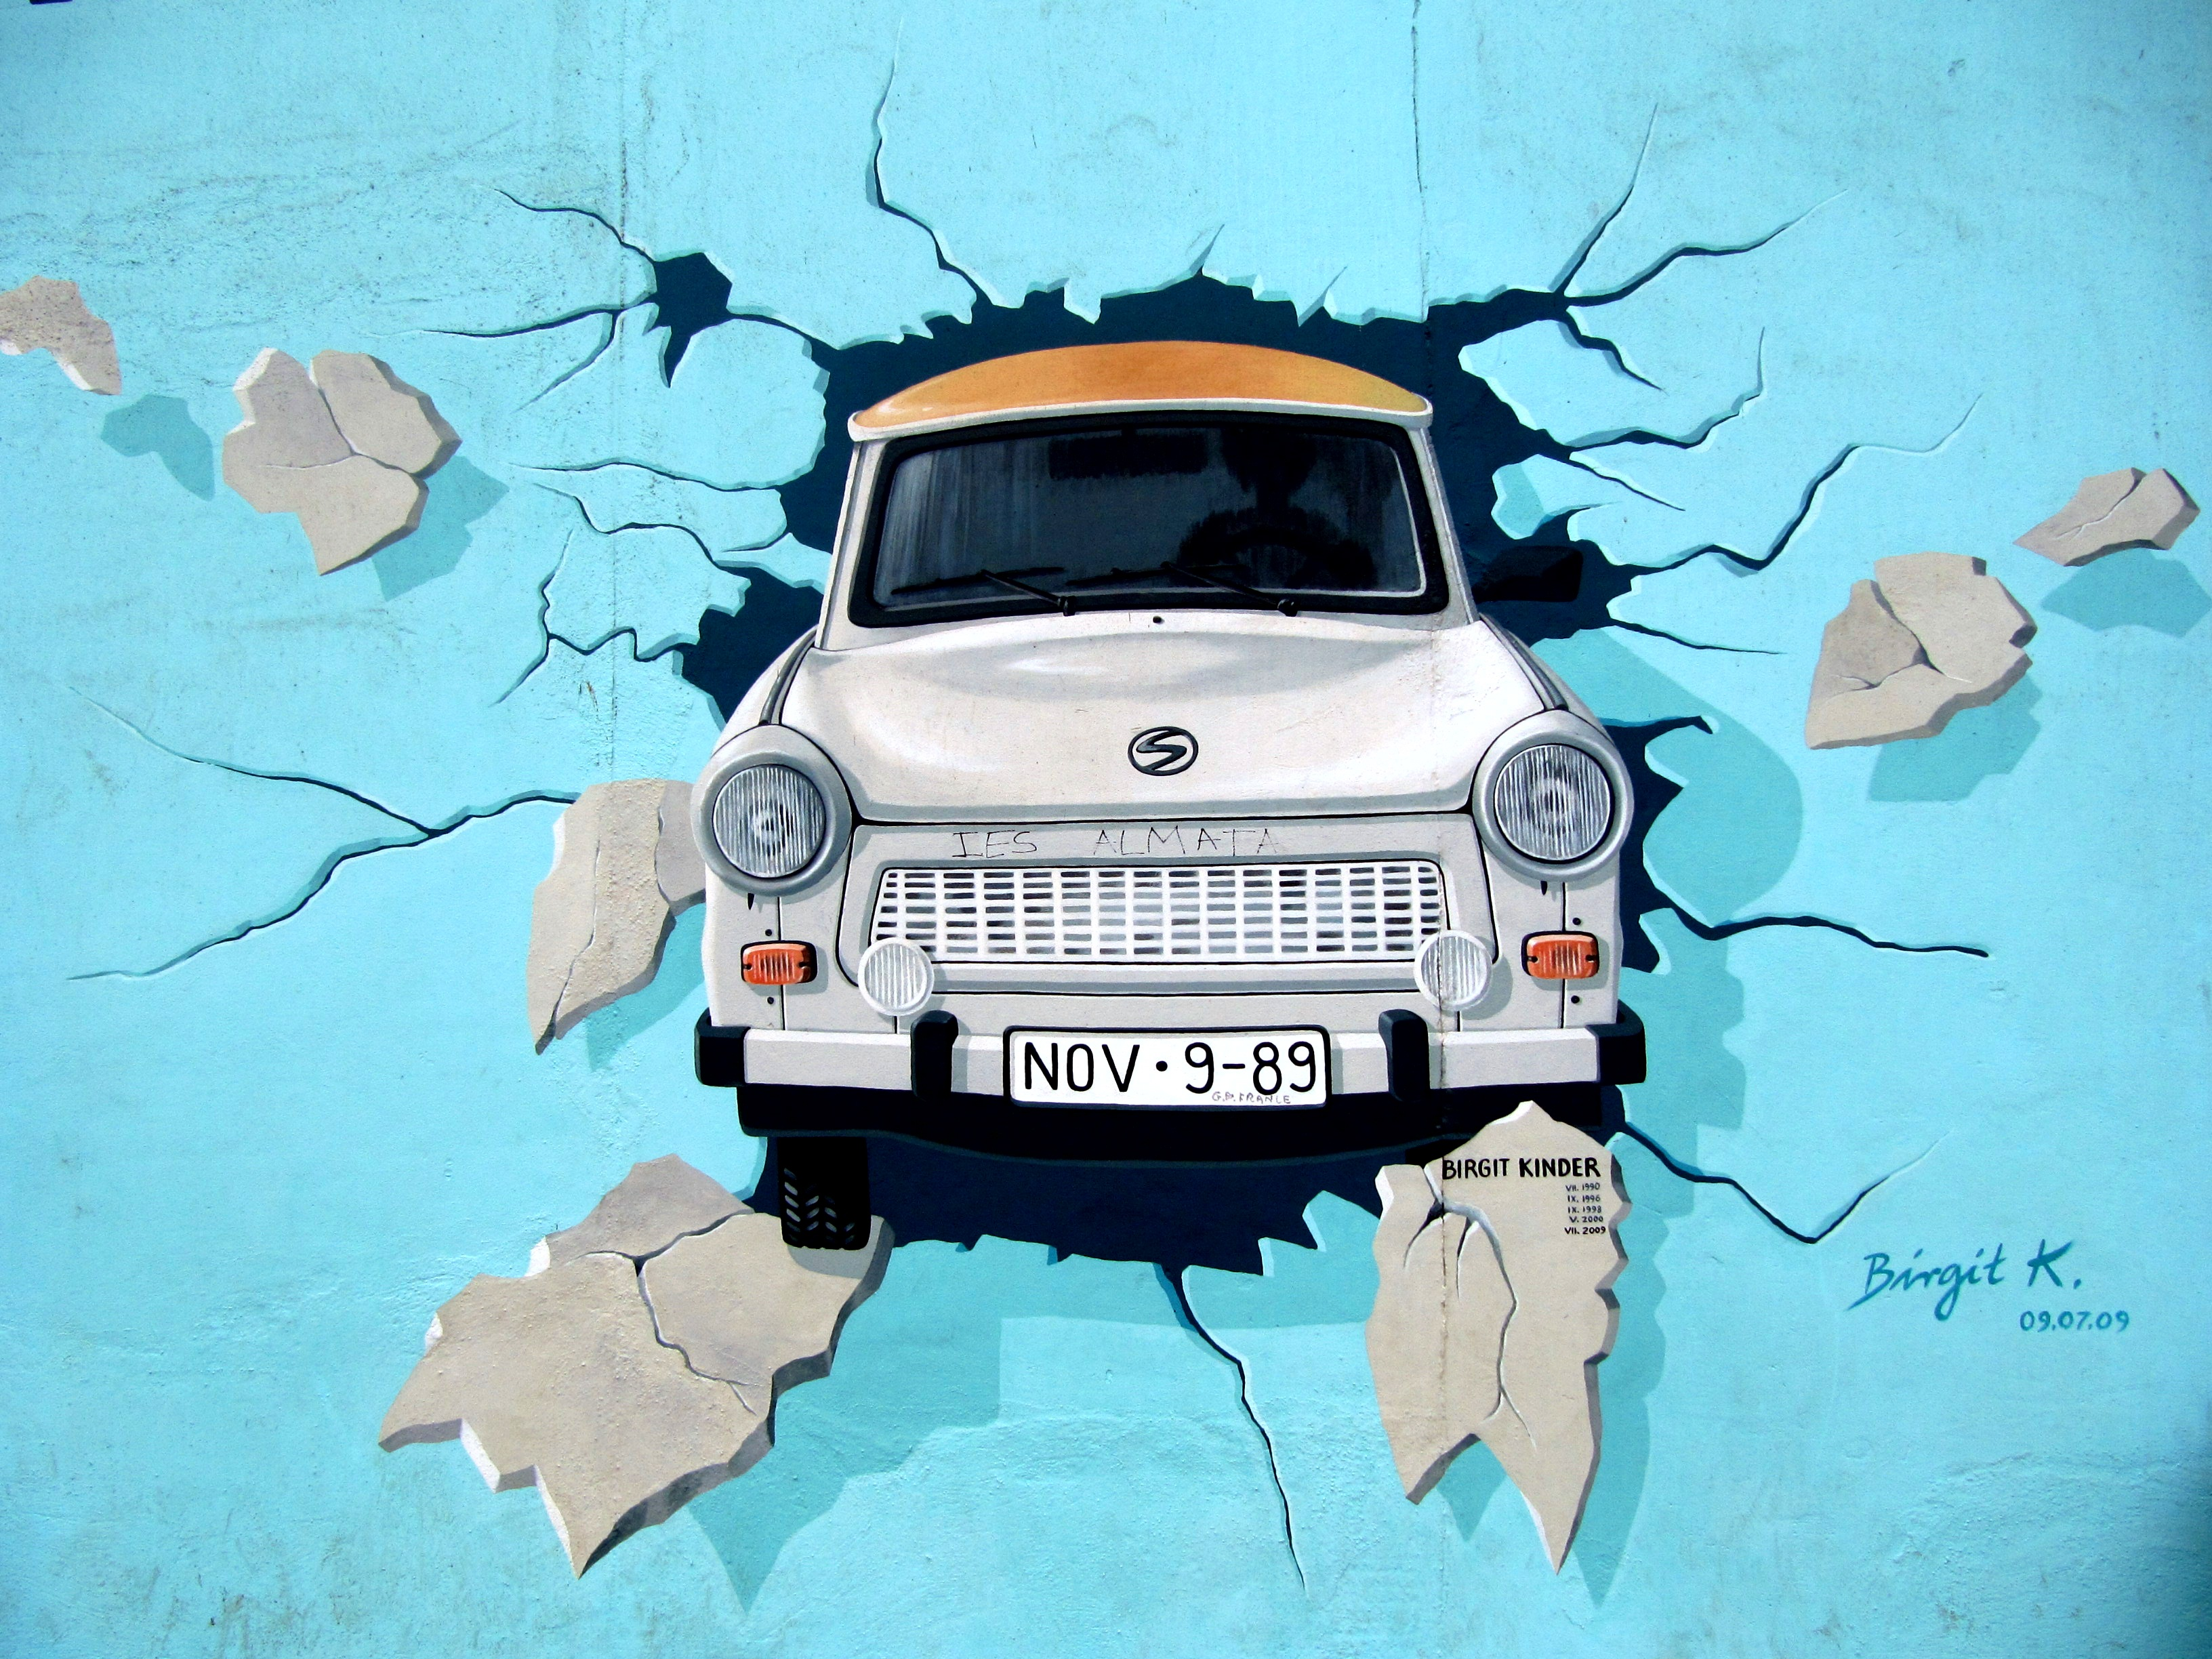 Best Car Wallpapers Hd Download White Car Crash In Blue Wall Signature Painting 183 Free